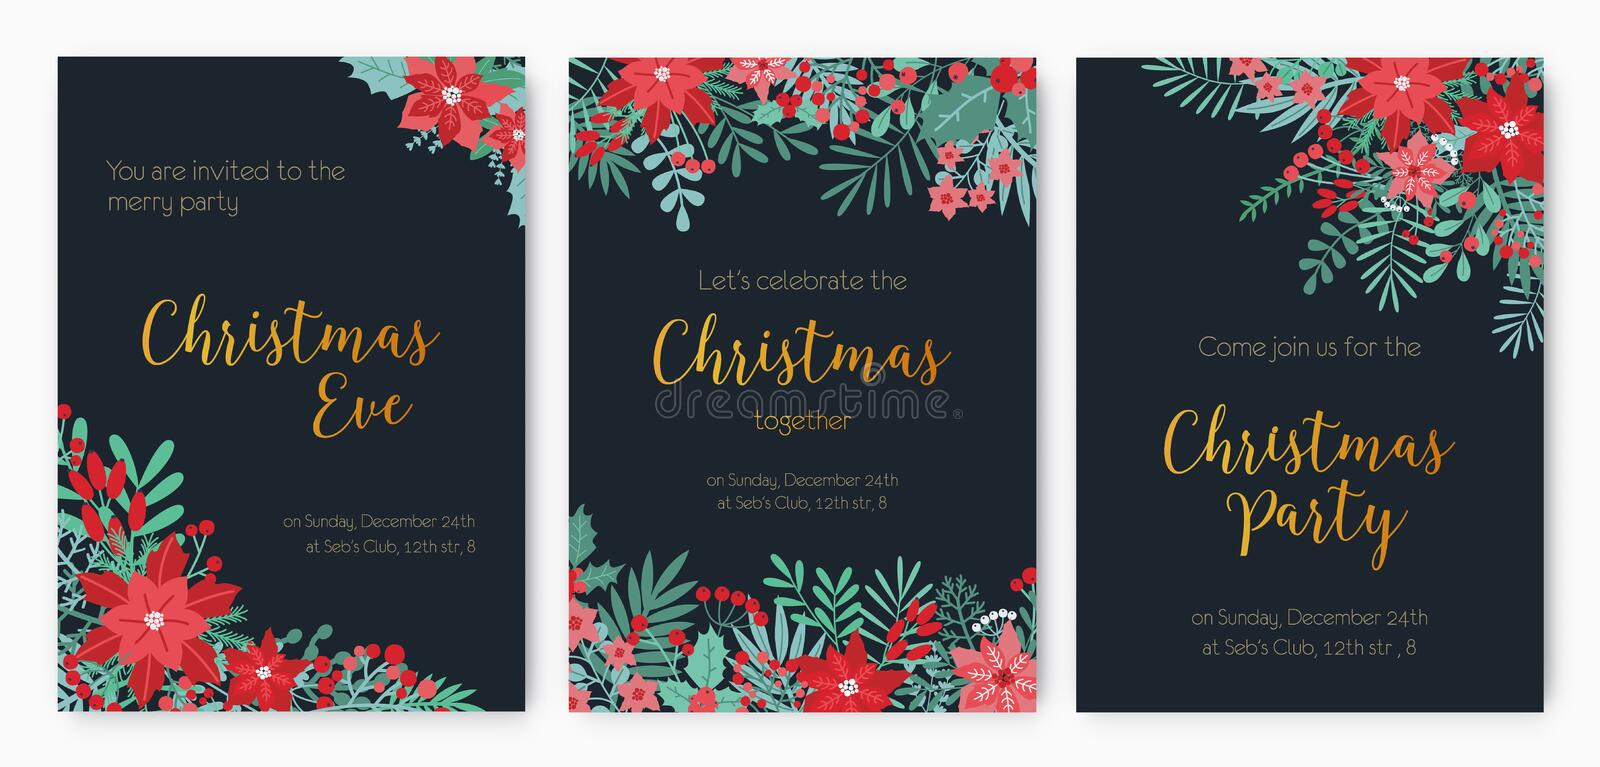 Bundle of Christmas Eve Party invitation, festive event announcement or promotional flyer templates decorated with red royalty free illustration